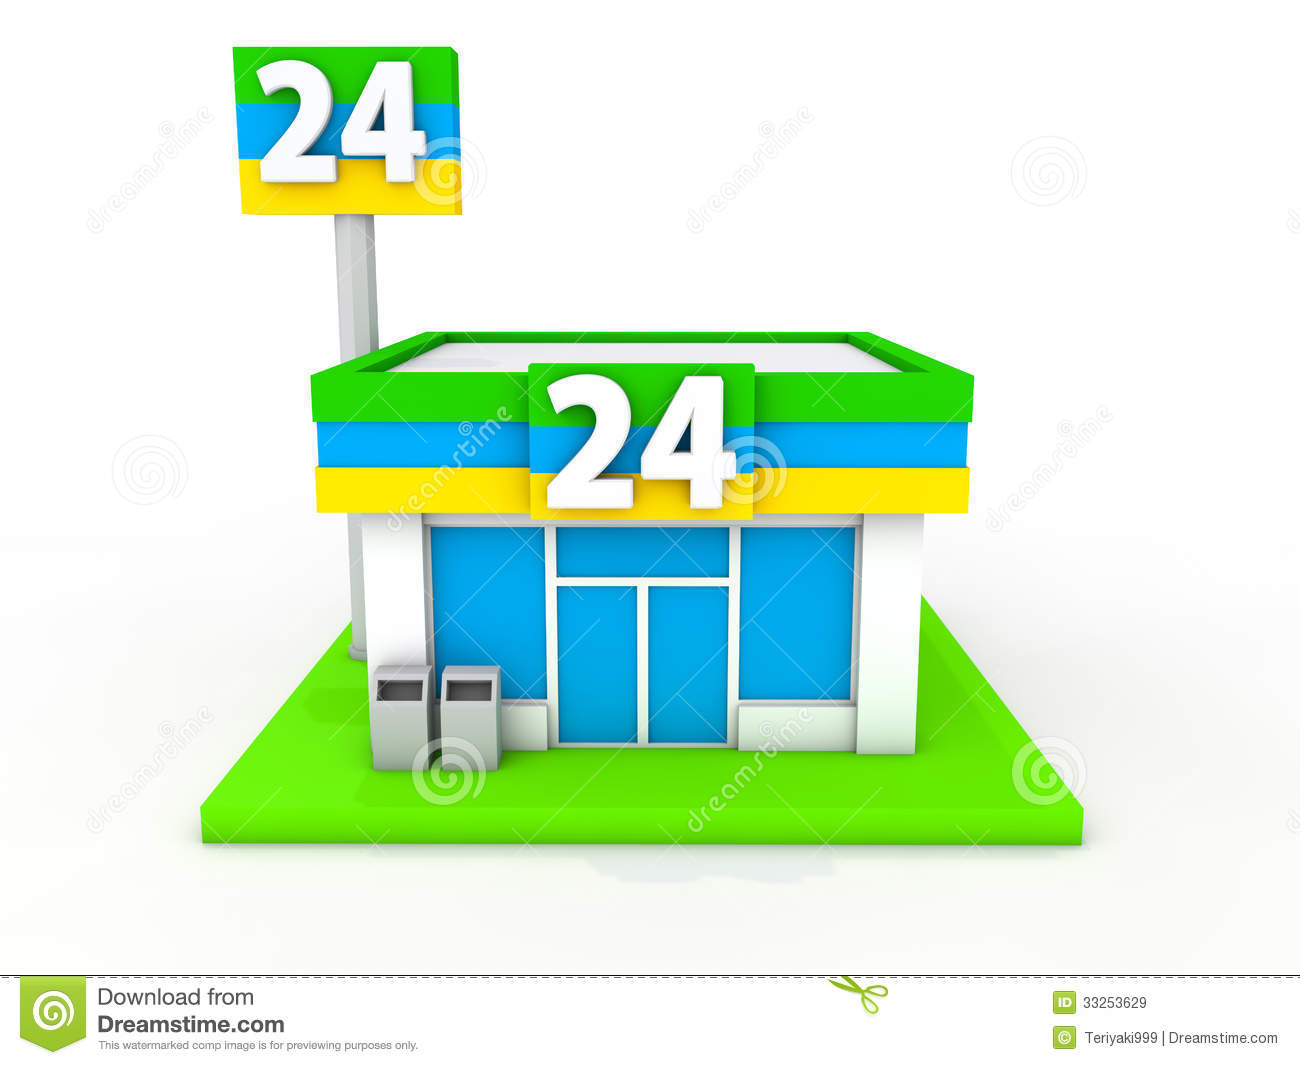 Denah Minimarket Convenience Store Stock Illustration Illustration Of